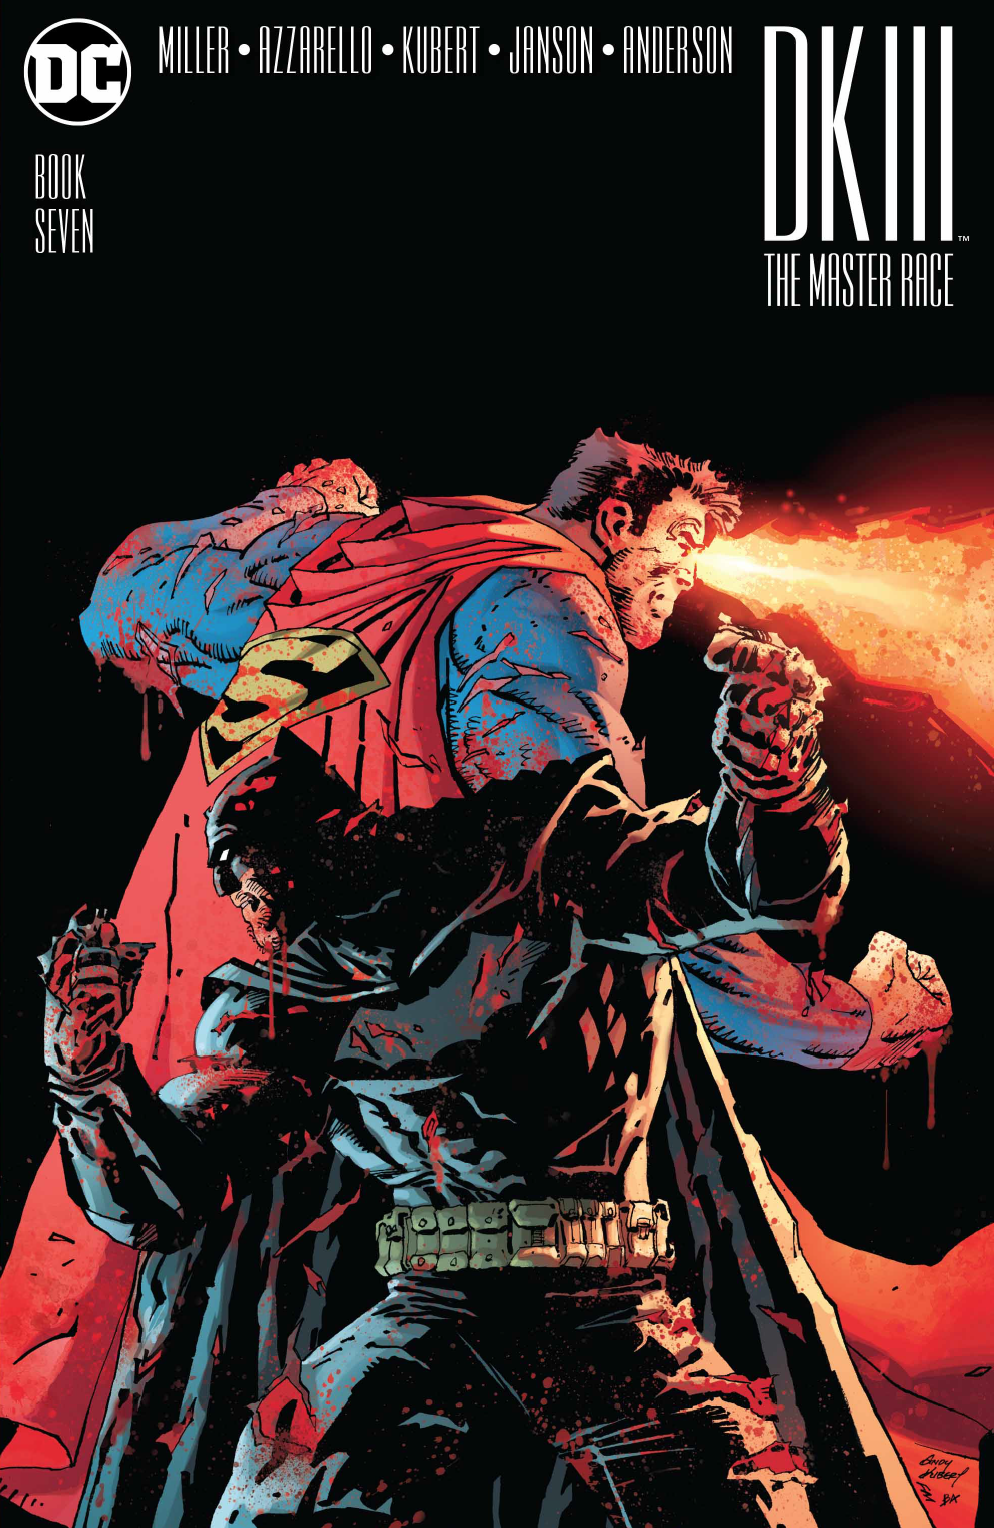 Dark Knight III: The Master Race #7 Review